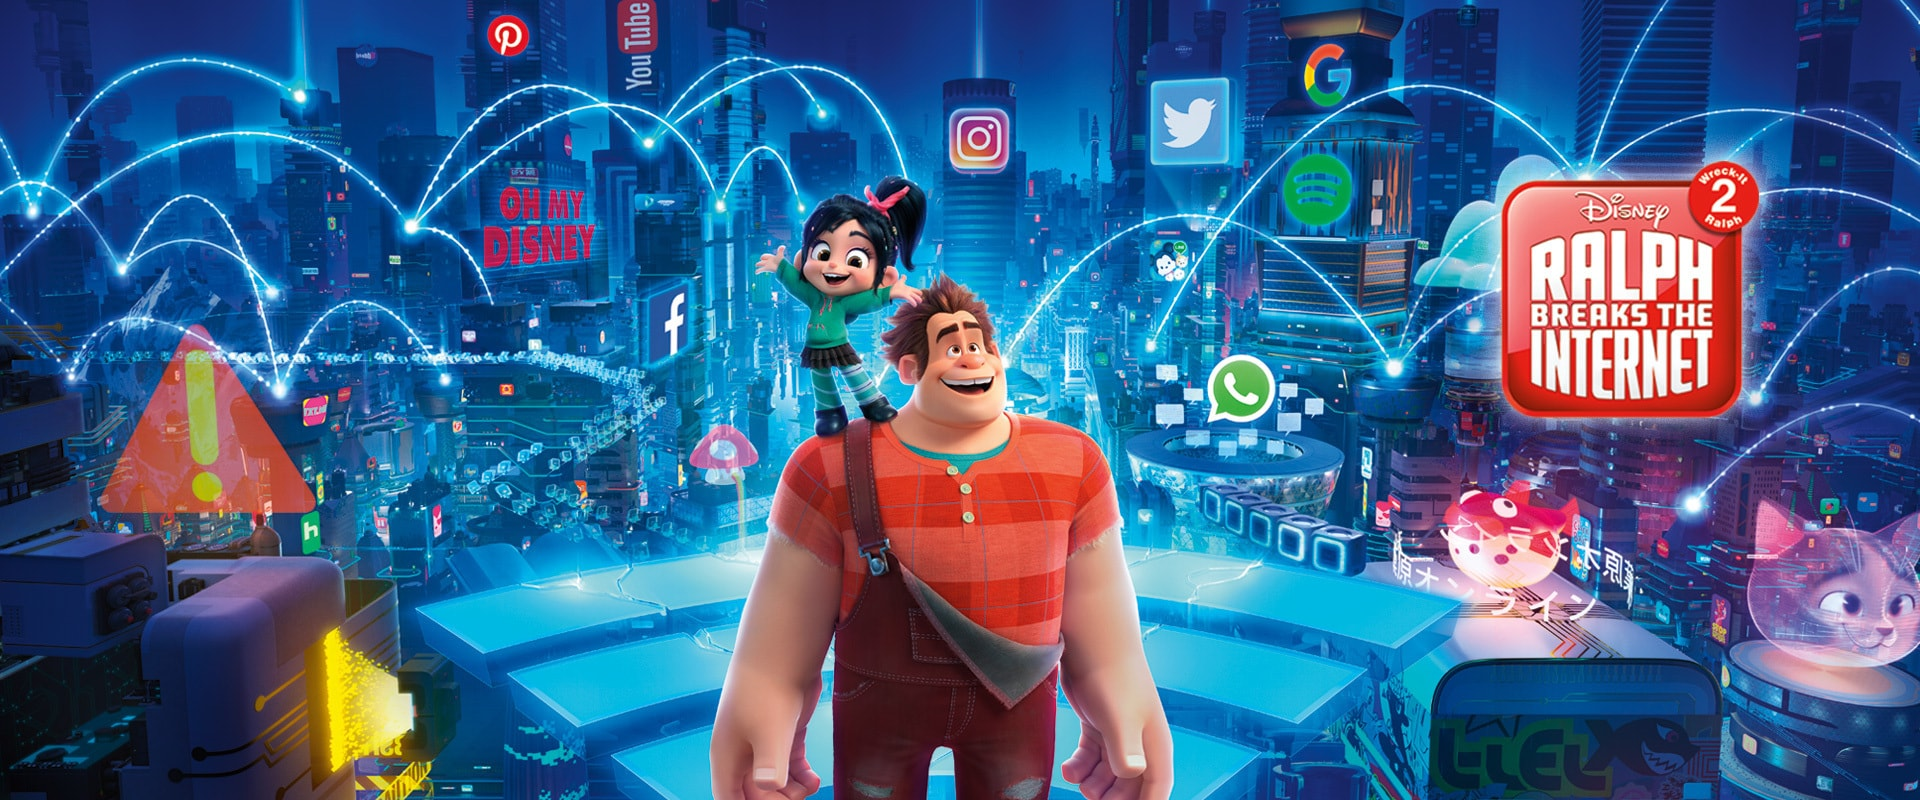 Ralph Breaks the Internet - Wreck it Ralph 2 - EMEA Banner